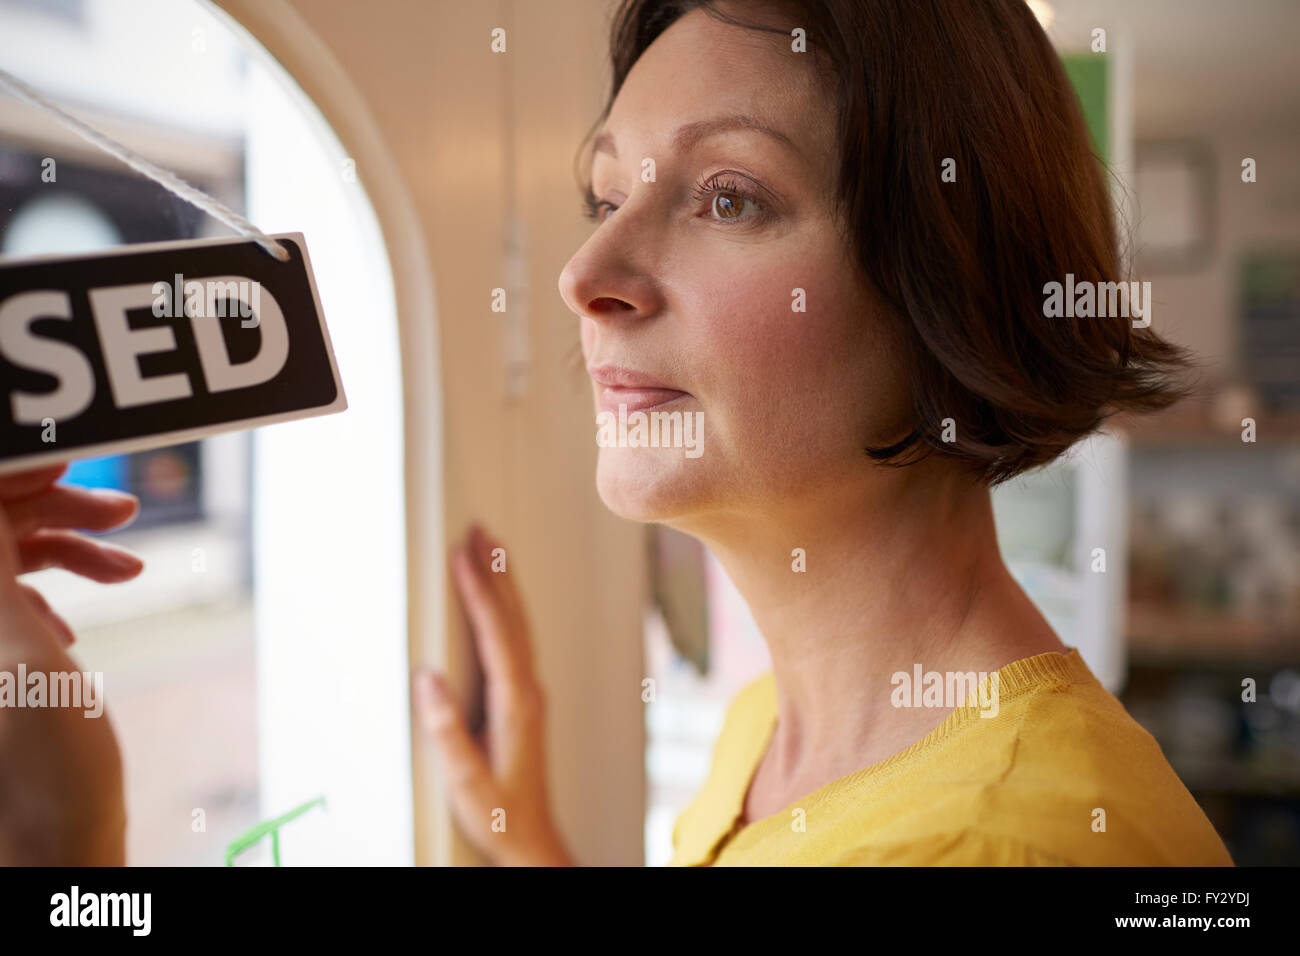 Female Owner Of Coffee Shop Turning Open Sign - Stock Image